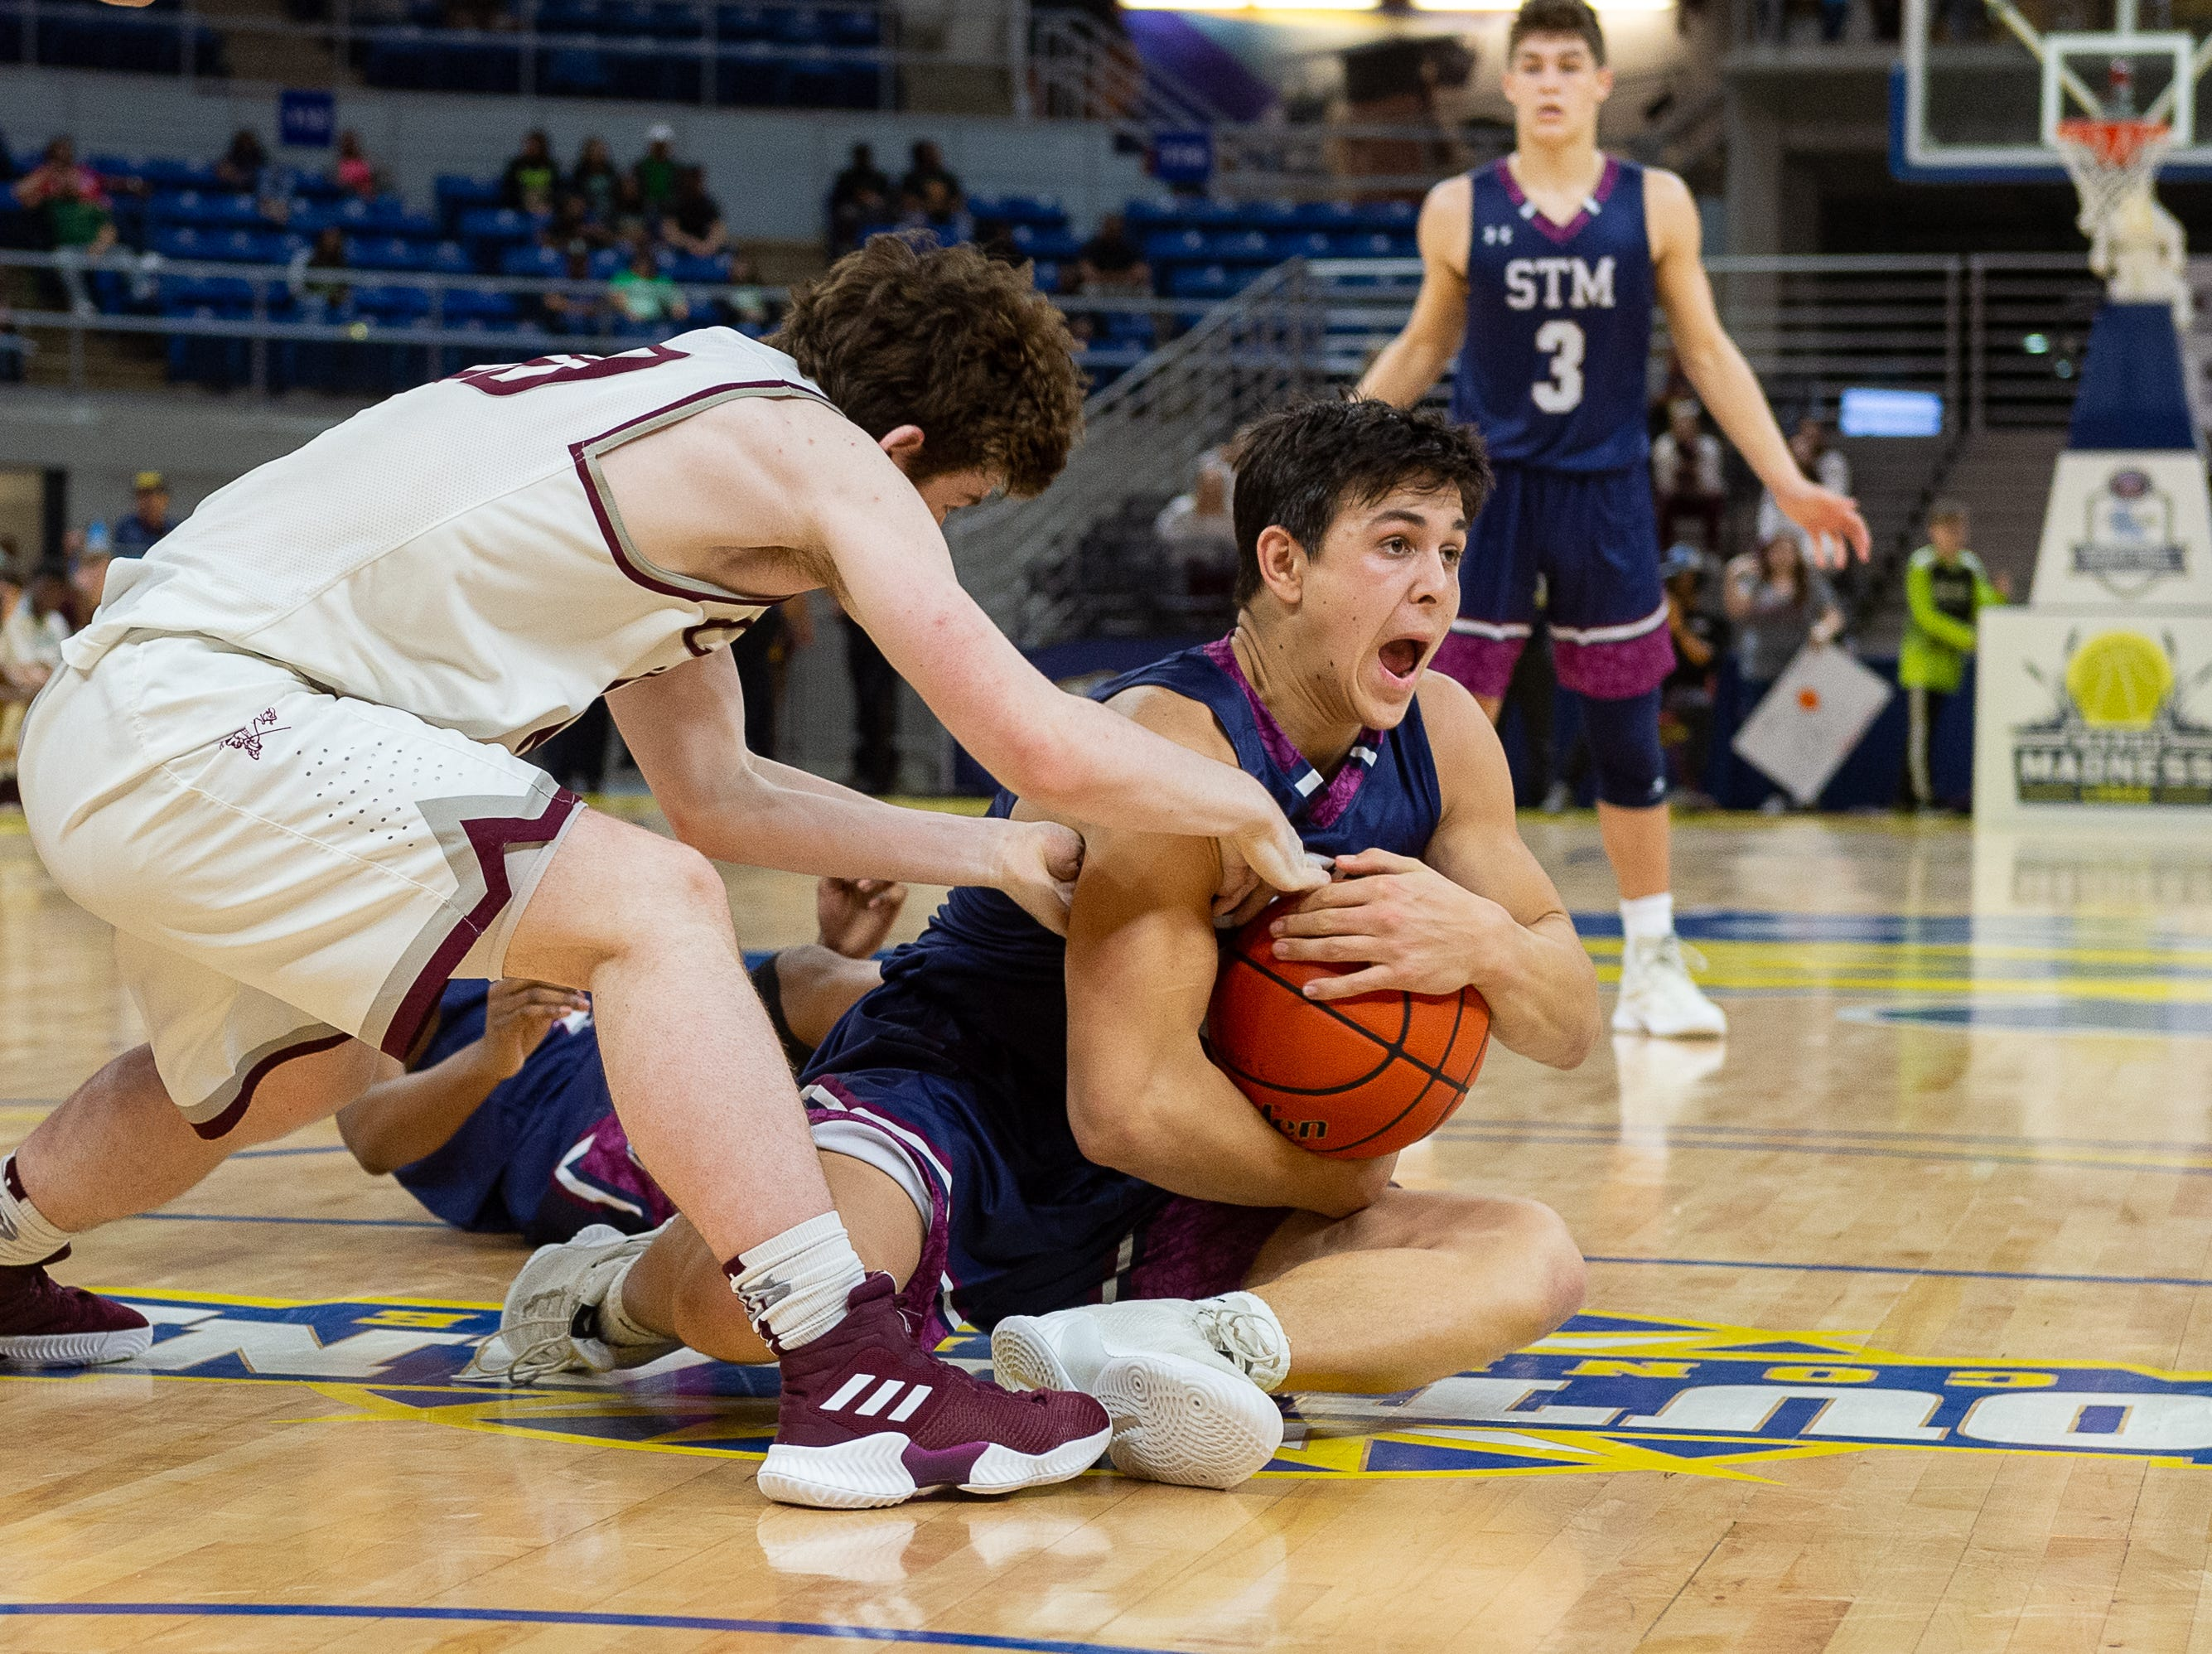 Jack Bech comes up with a lose ball as The STM Cougars beat DeLaSalle in double overtime to win the Allstate Sugar Bowl/LHSAA Boys' Marsh Madness Div II State Championship. Saturday, March 9, 2019.